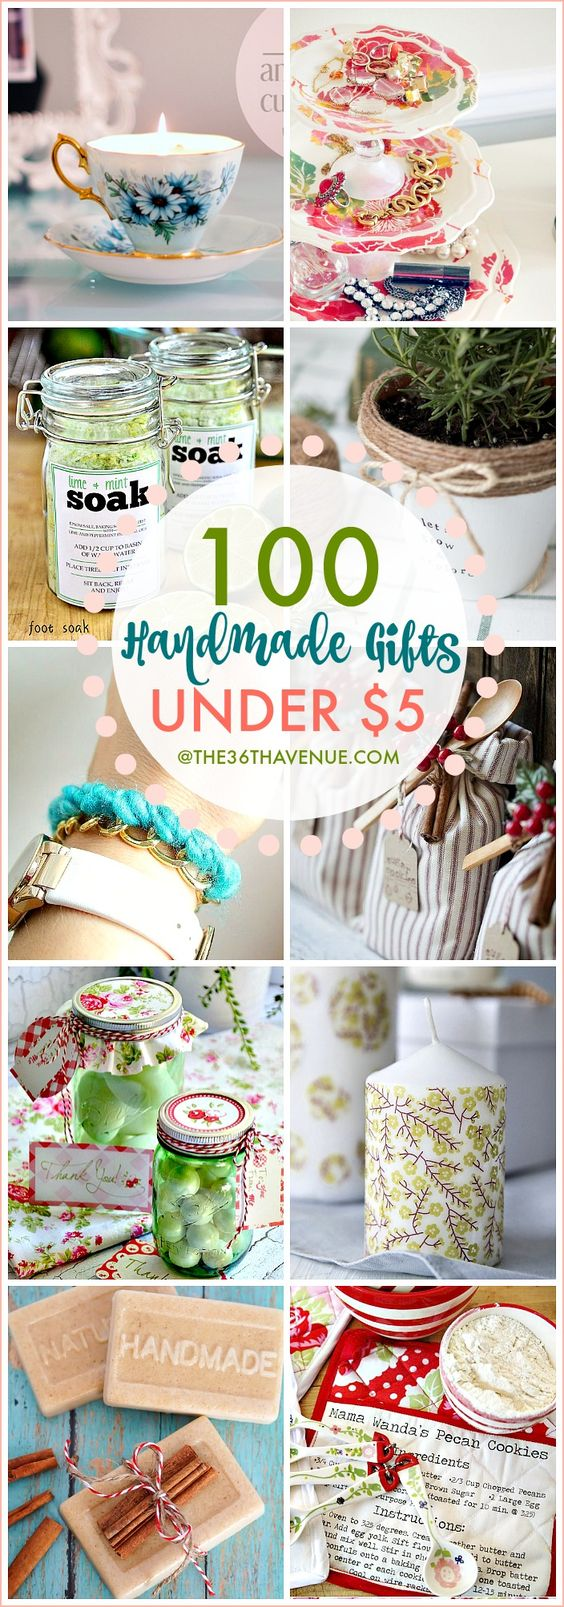 100 handmade gifts under five dollars birthdays about Christmas ideas for mothers